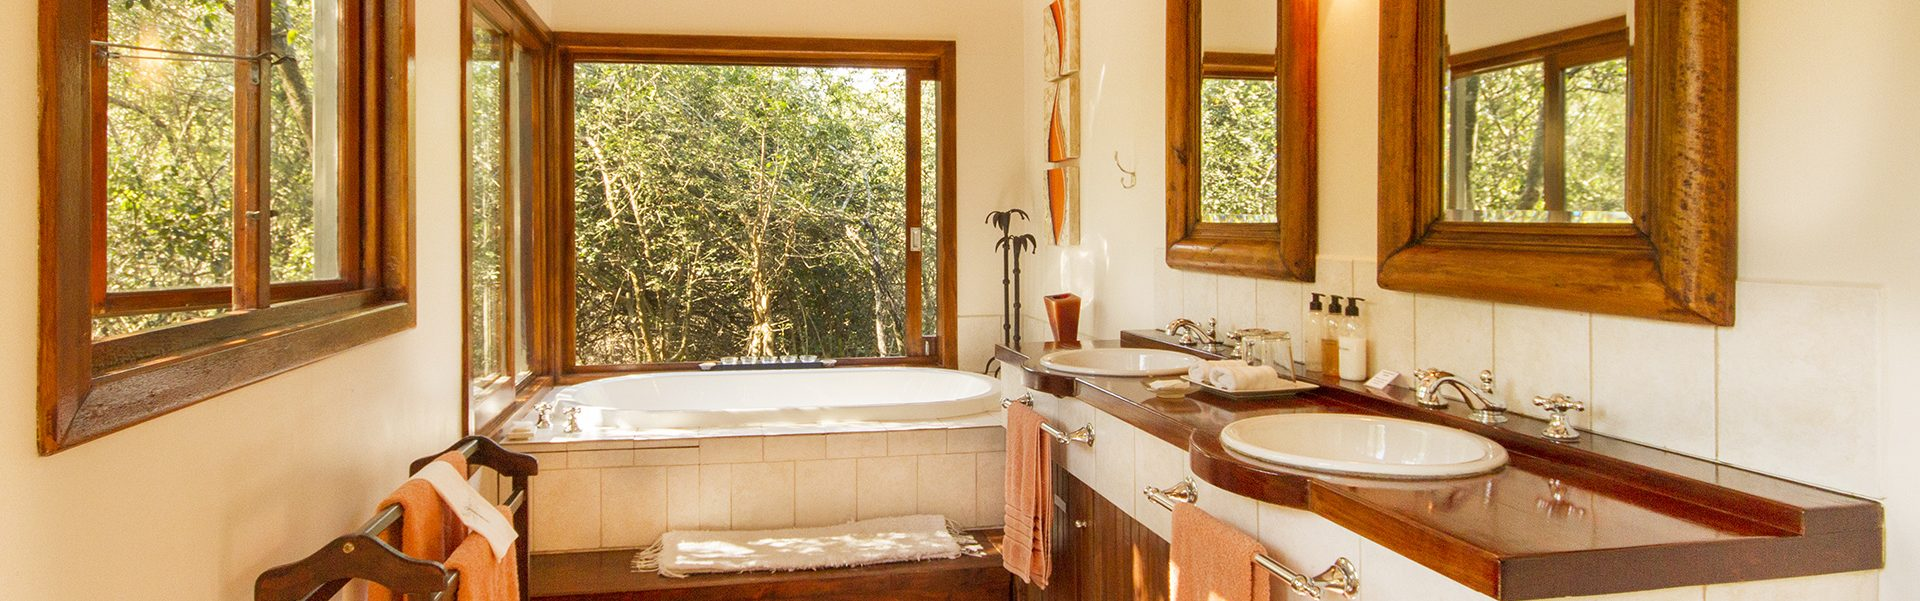 Thornwood Luxury Bush Lodge